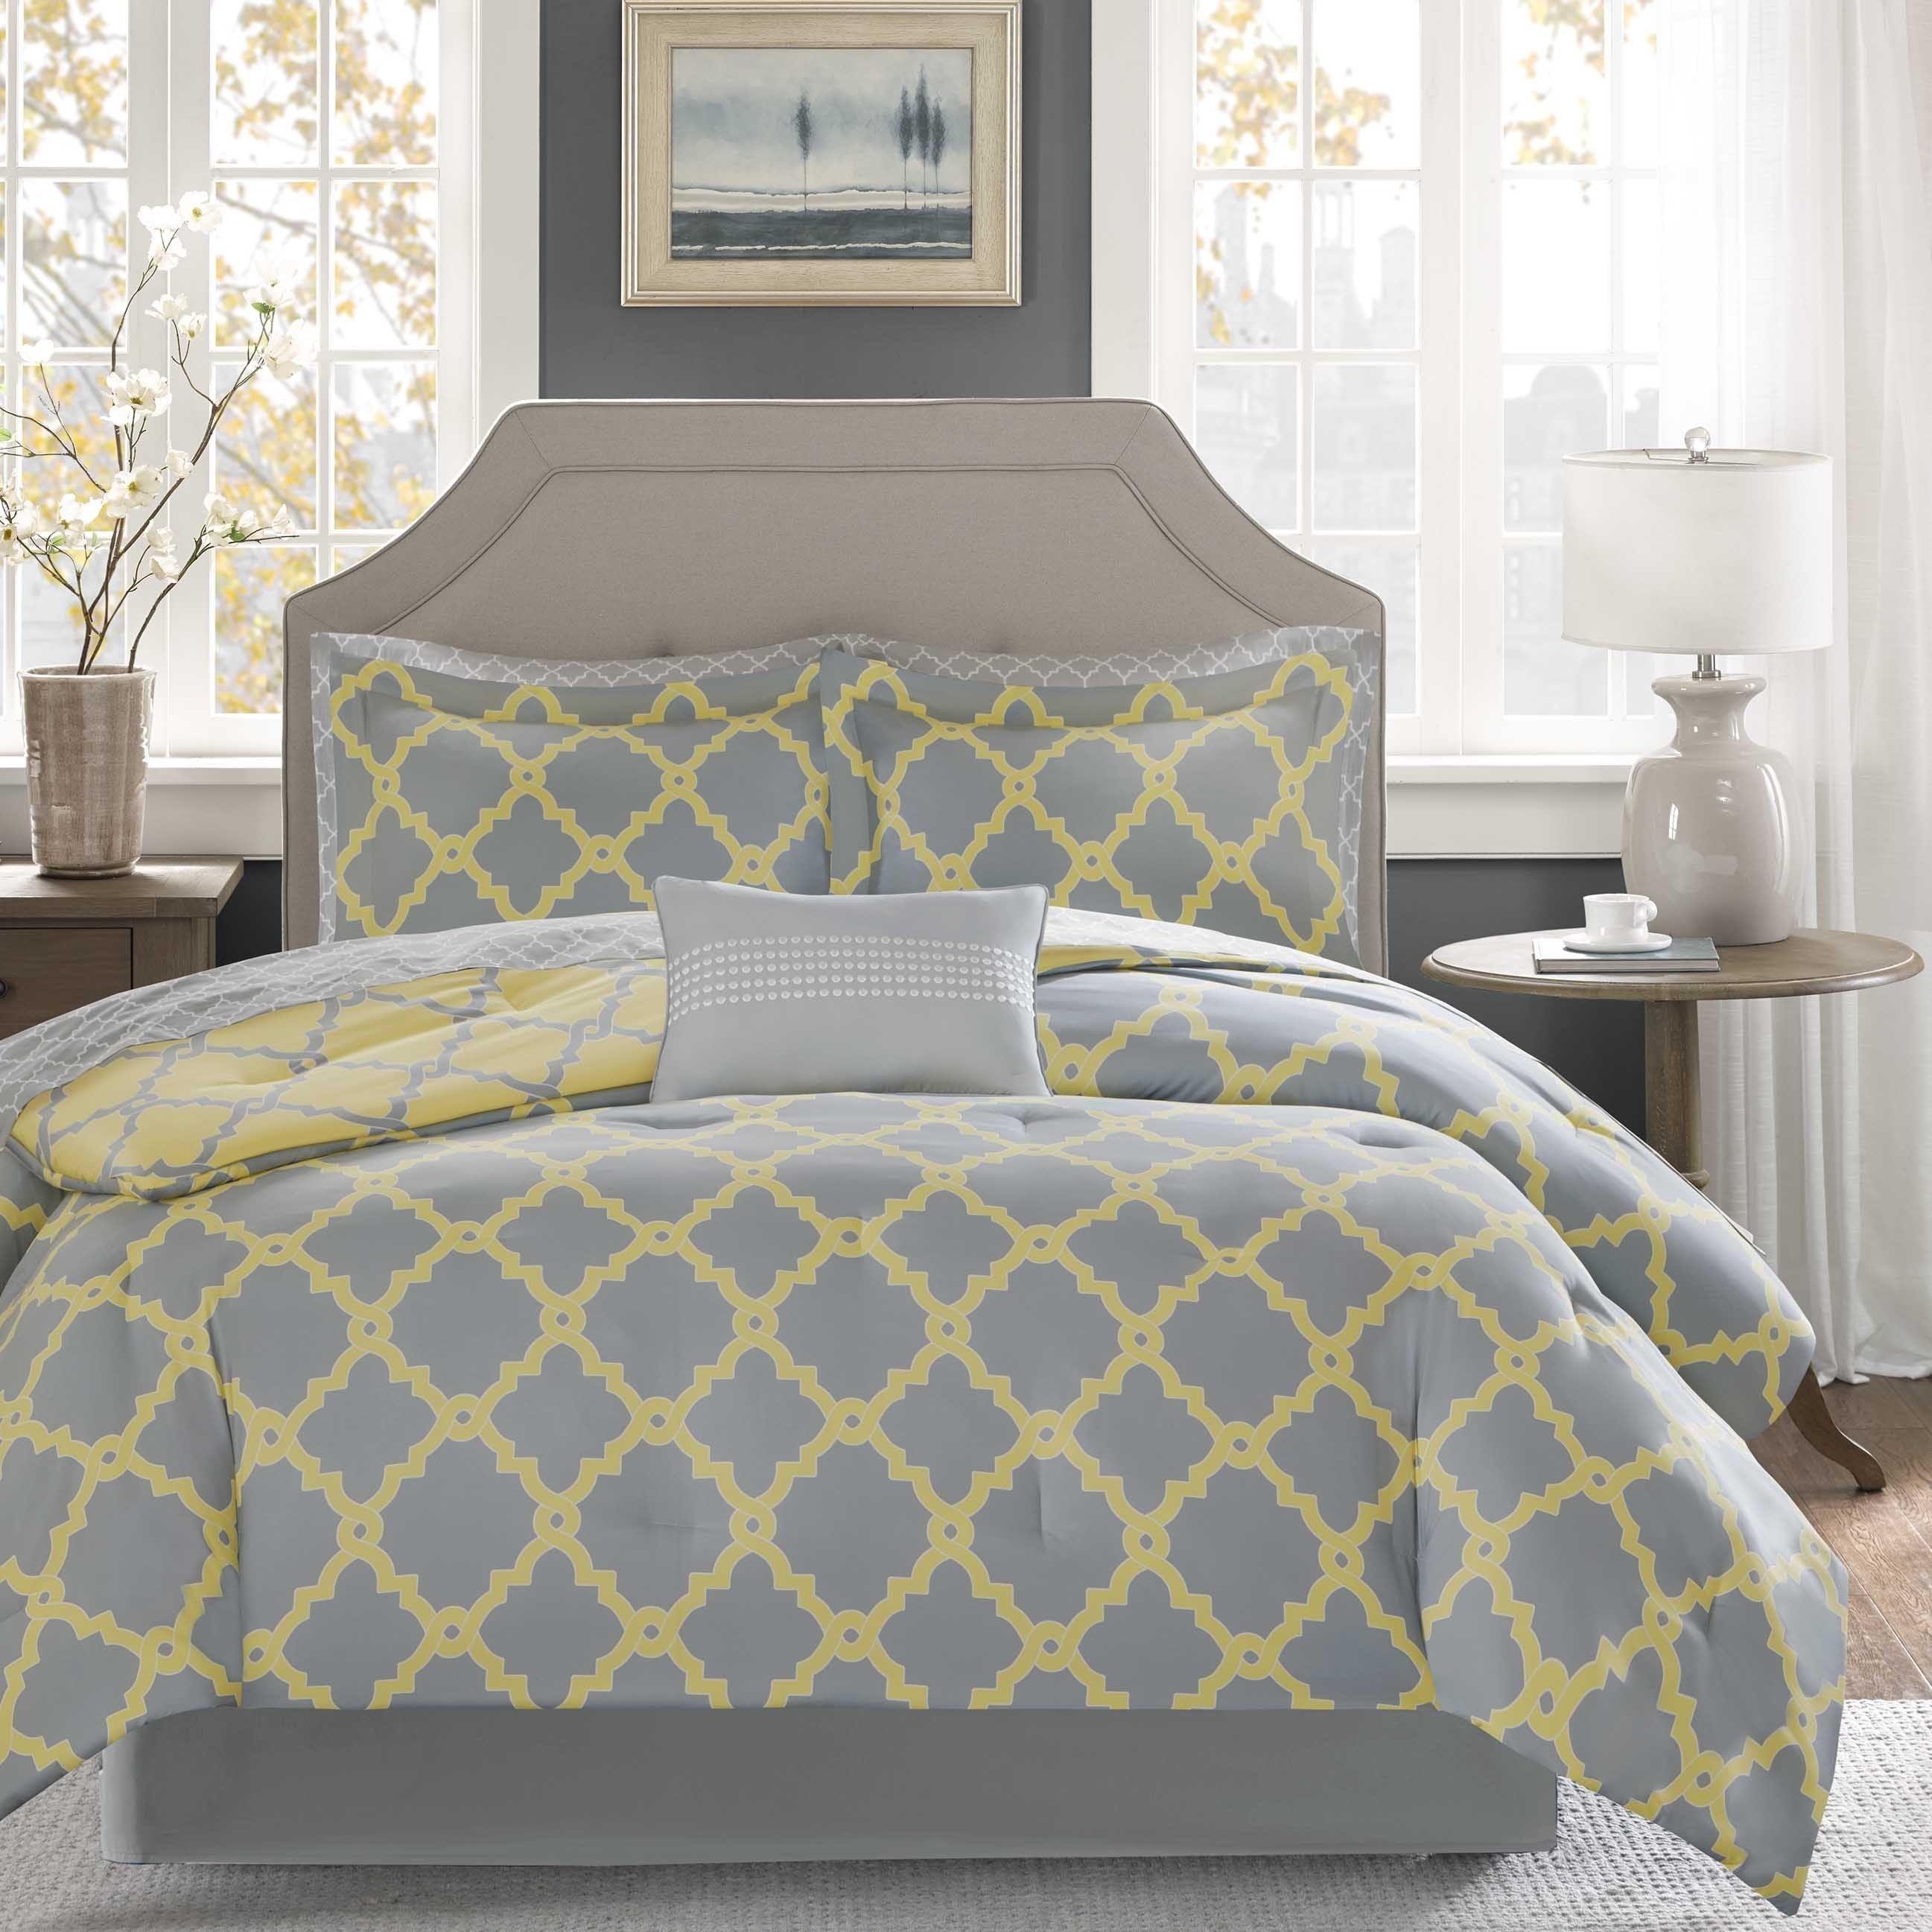 avondale piece product orders shipping overstock on bedding bed palermo free com over bath manor quilt set